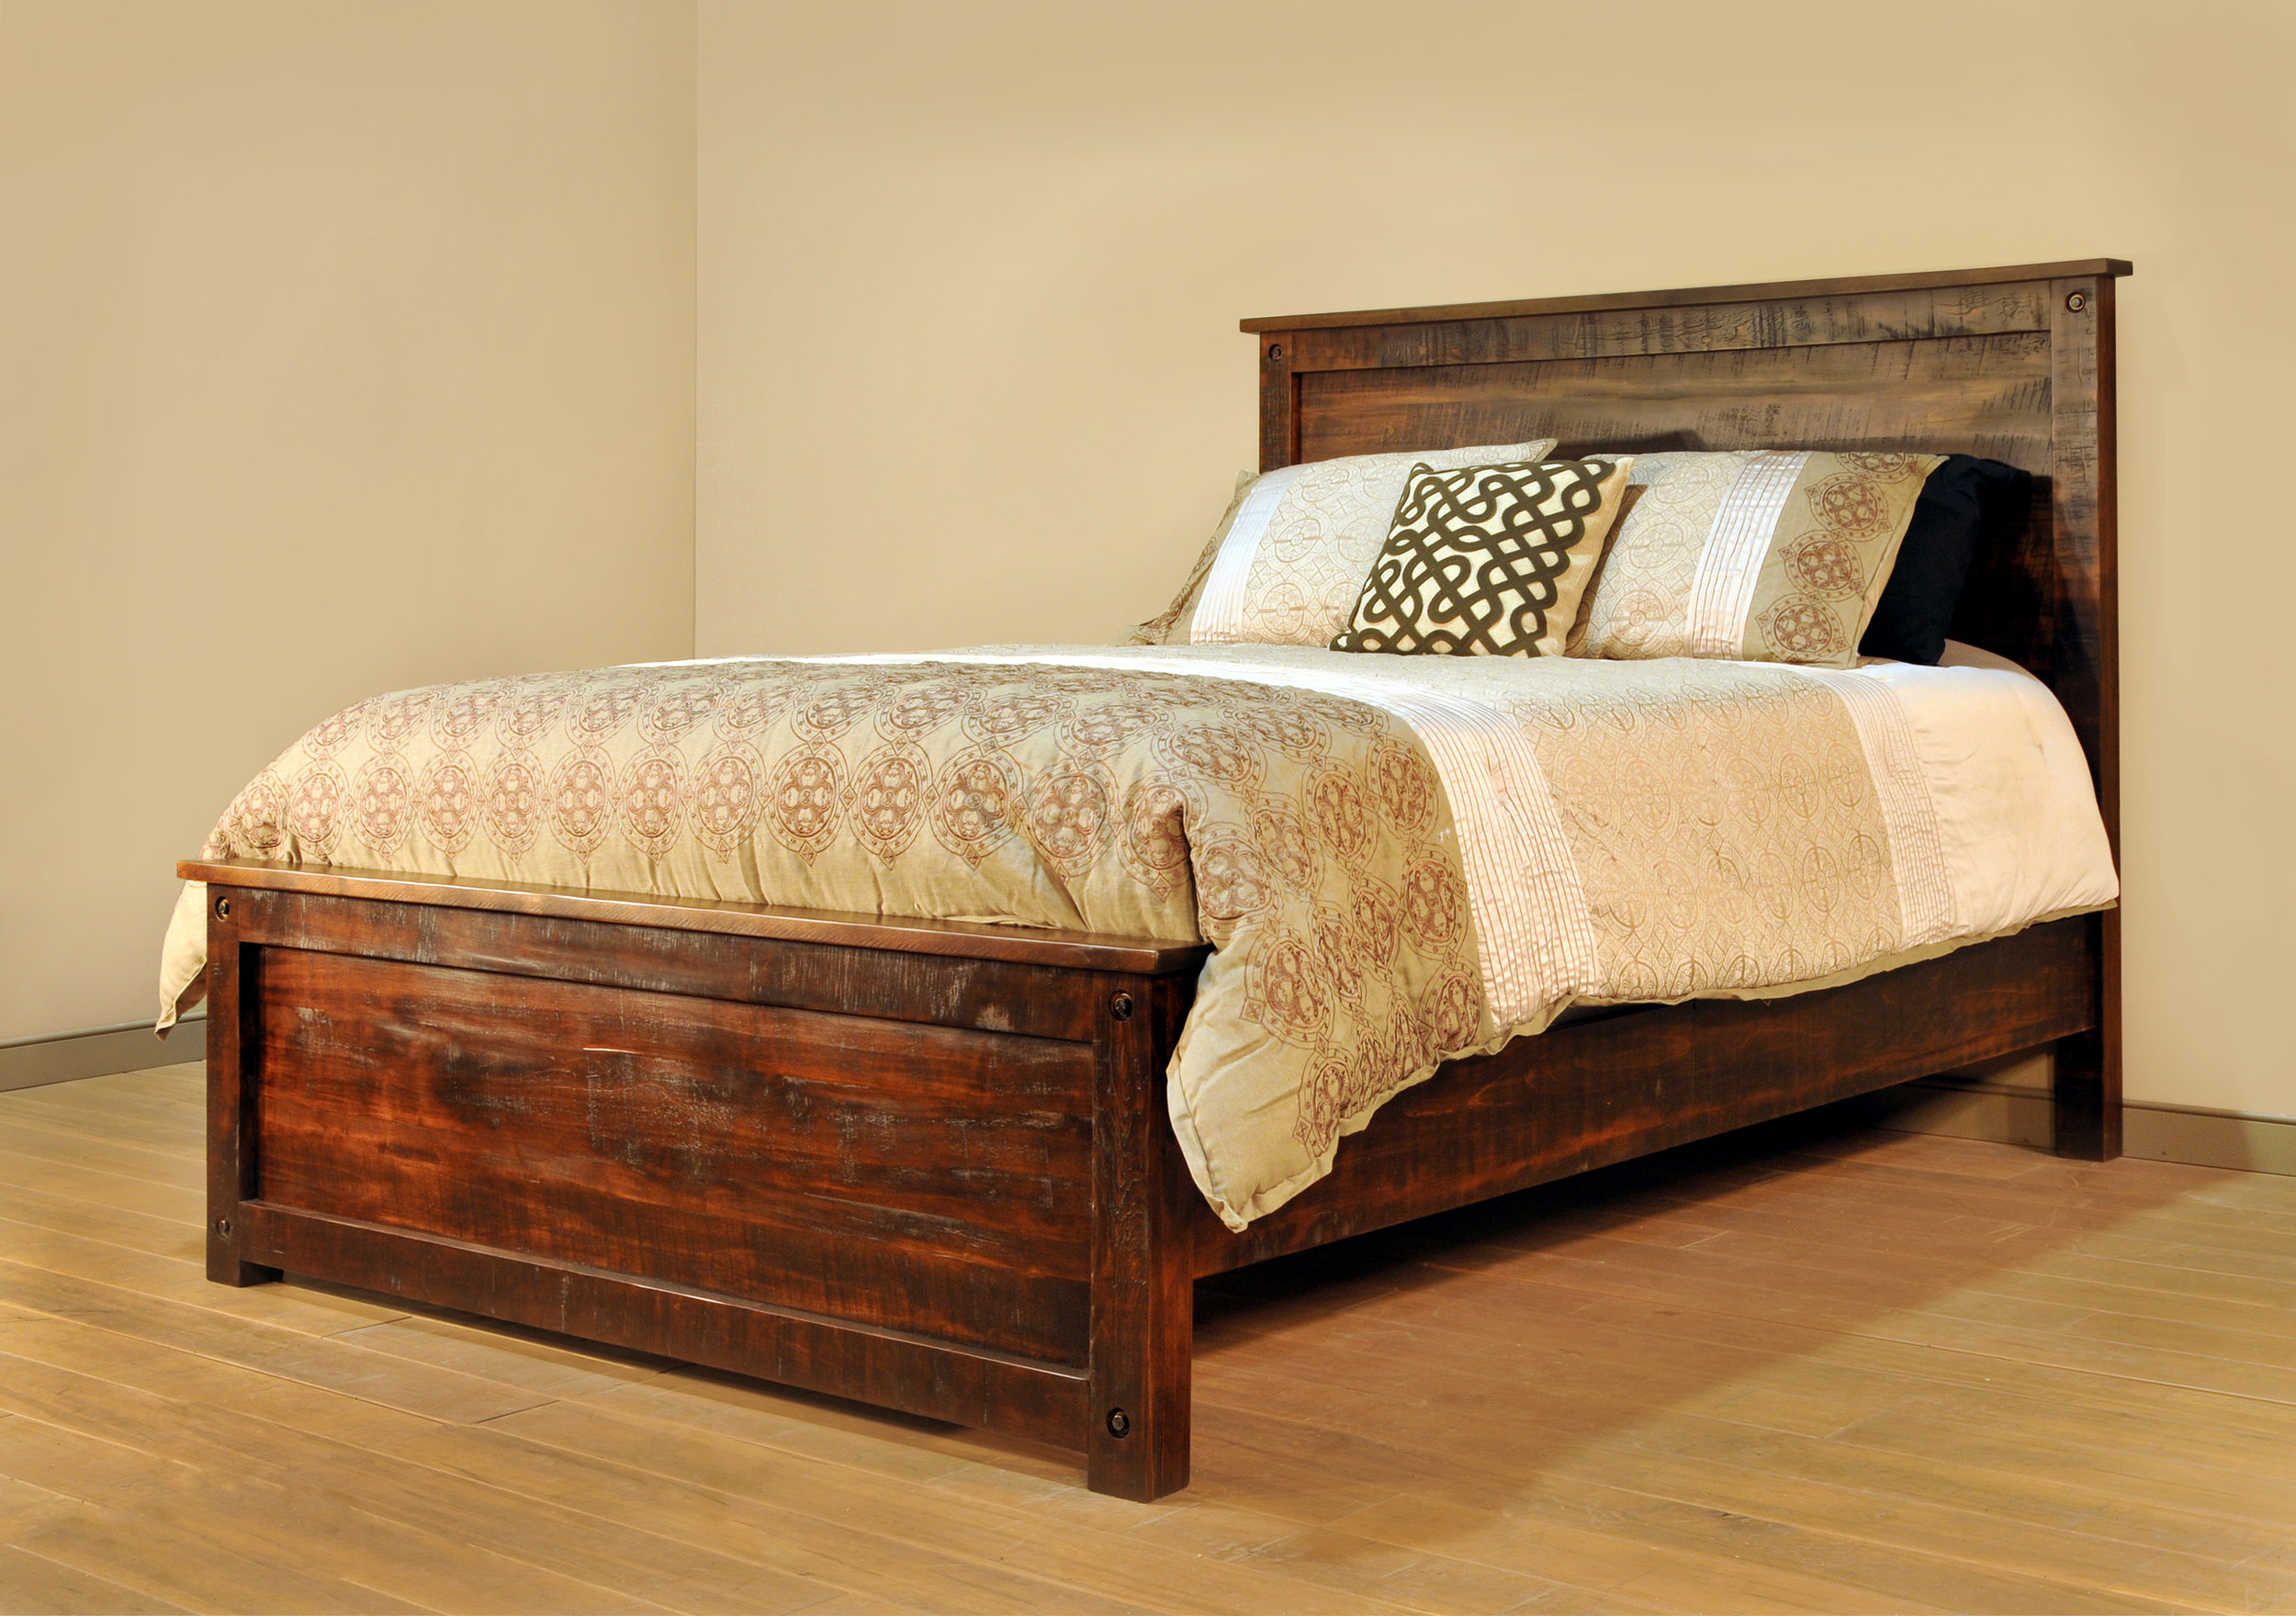 Bed for sale at furniture showroom PA and Ohio